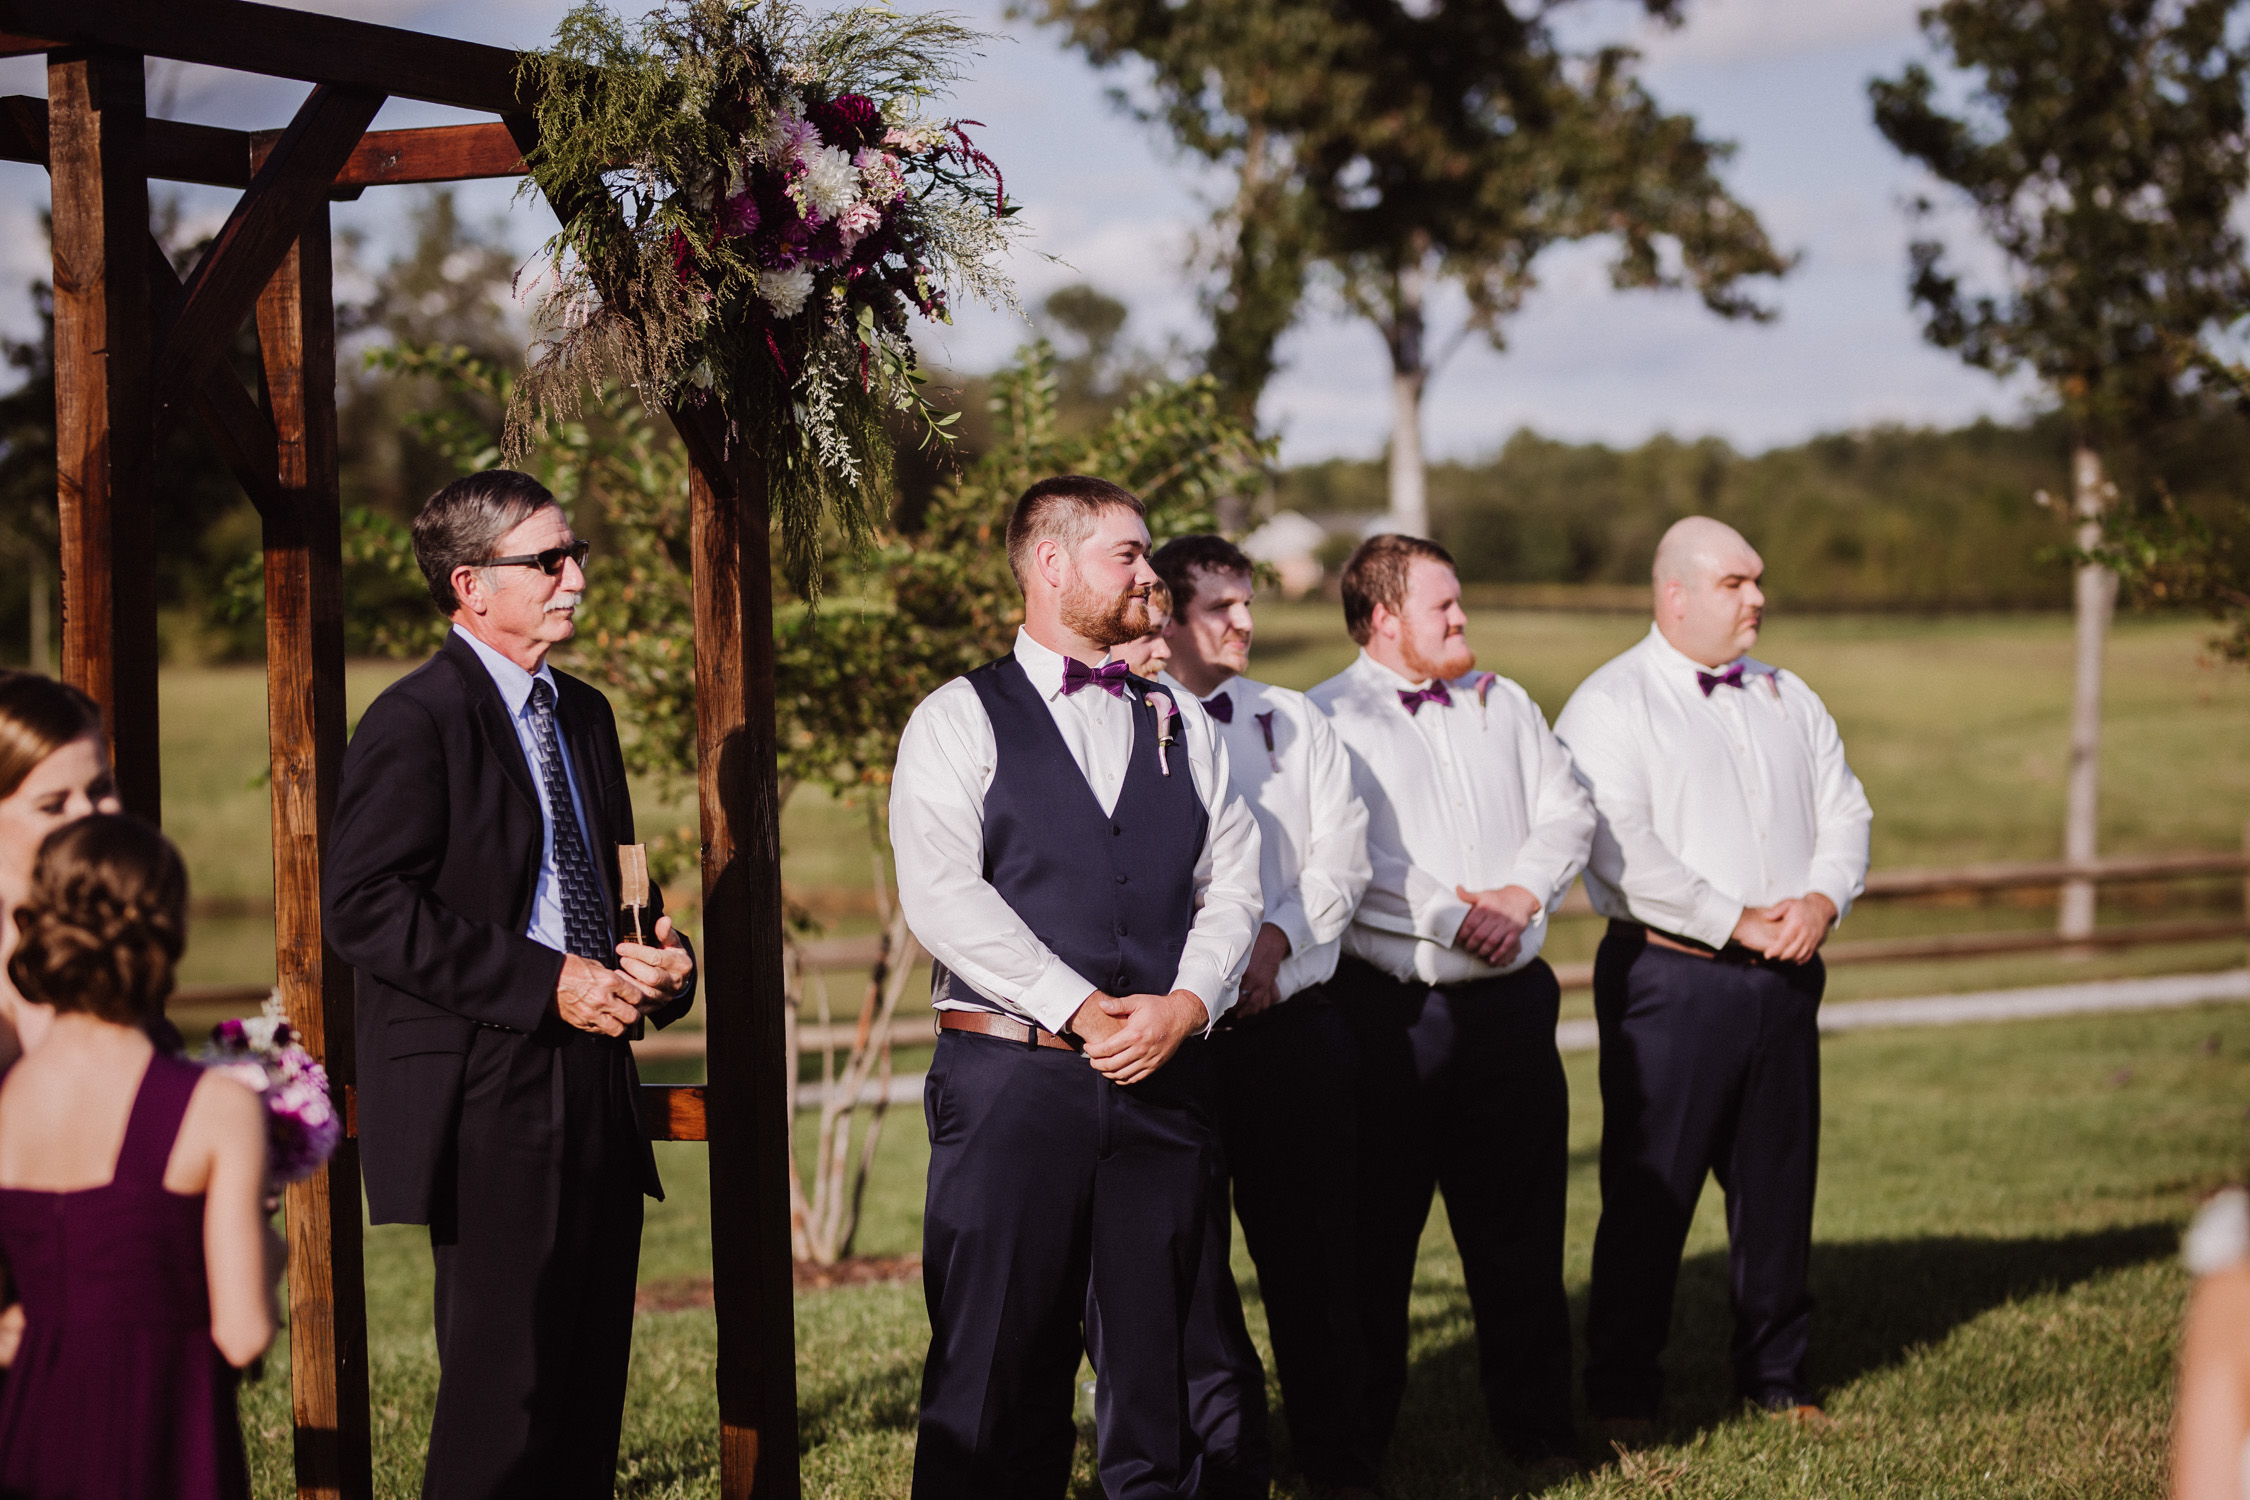 Classy, Southern, Country Wedding |  ceremony at Atkinson Farms in Danville, Virginia | Greensboro Winston-Salem, NC Wedding Photographer